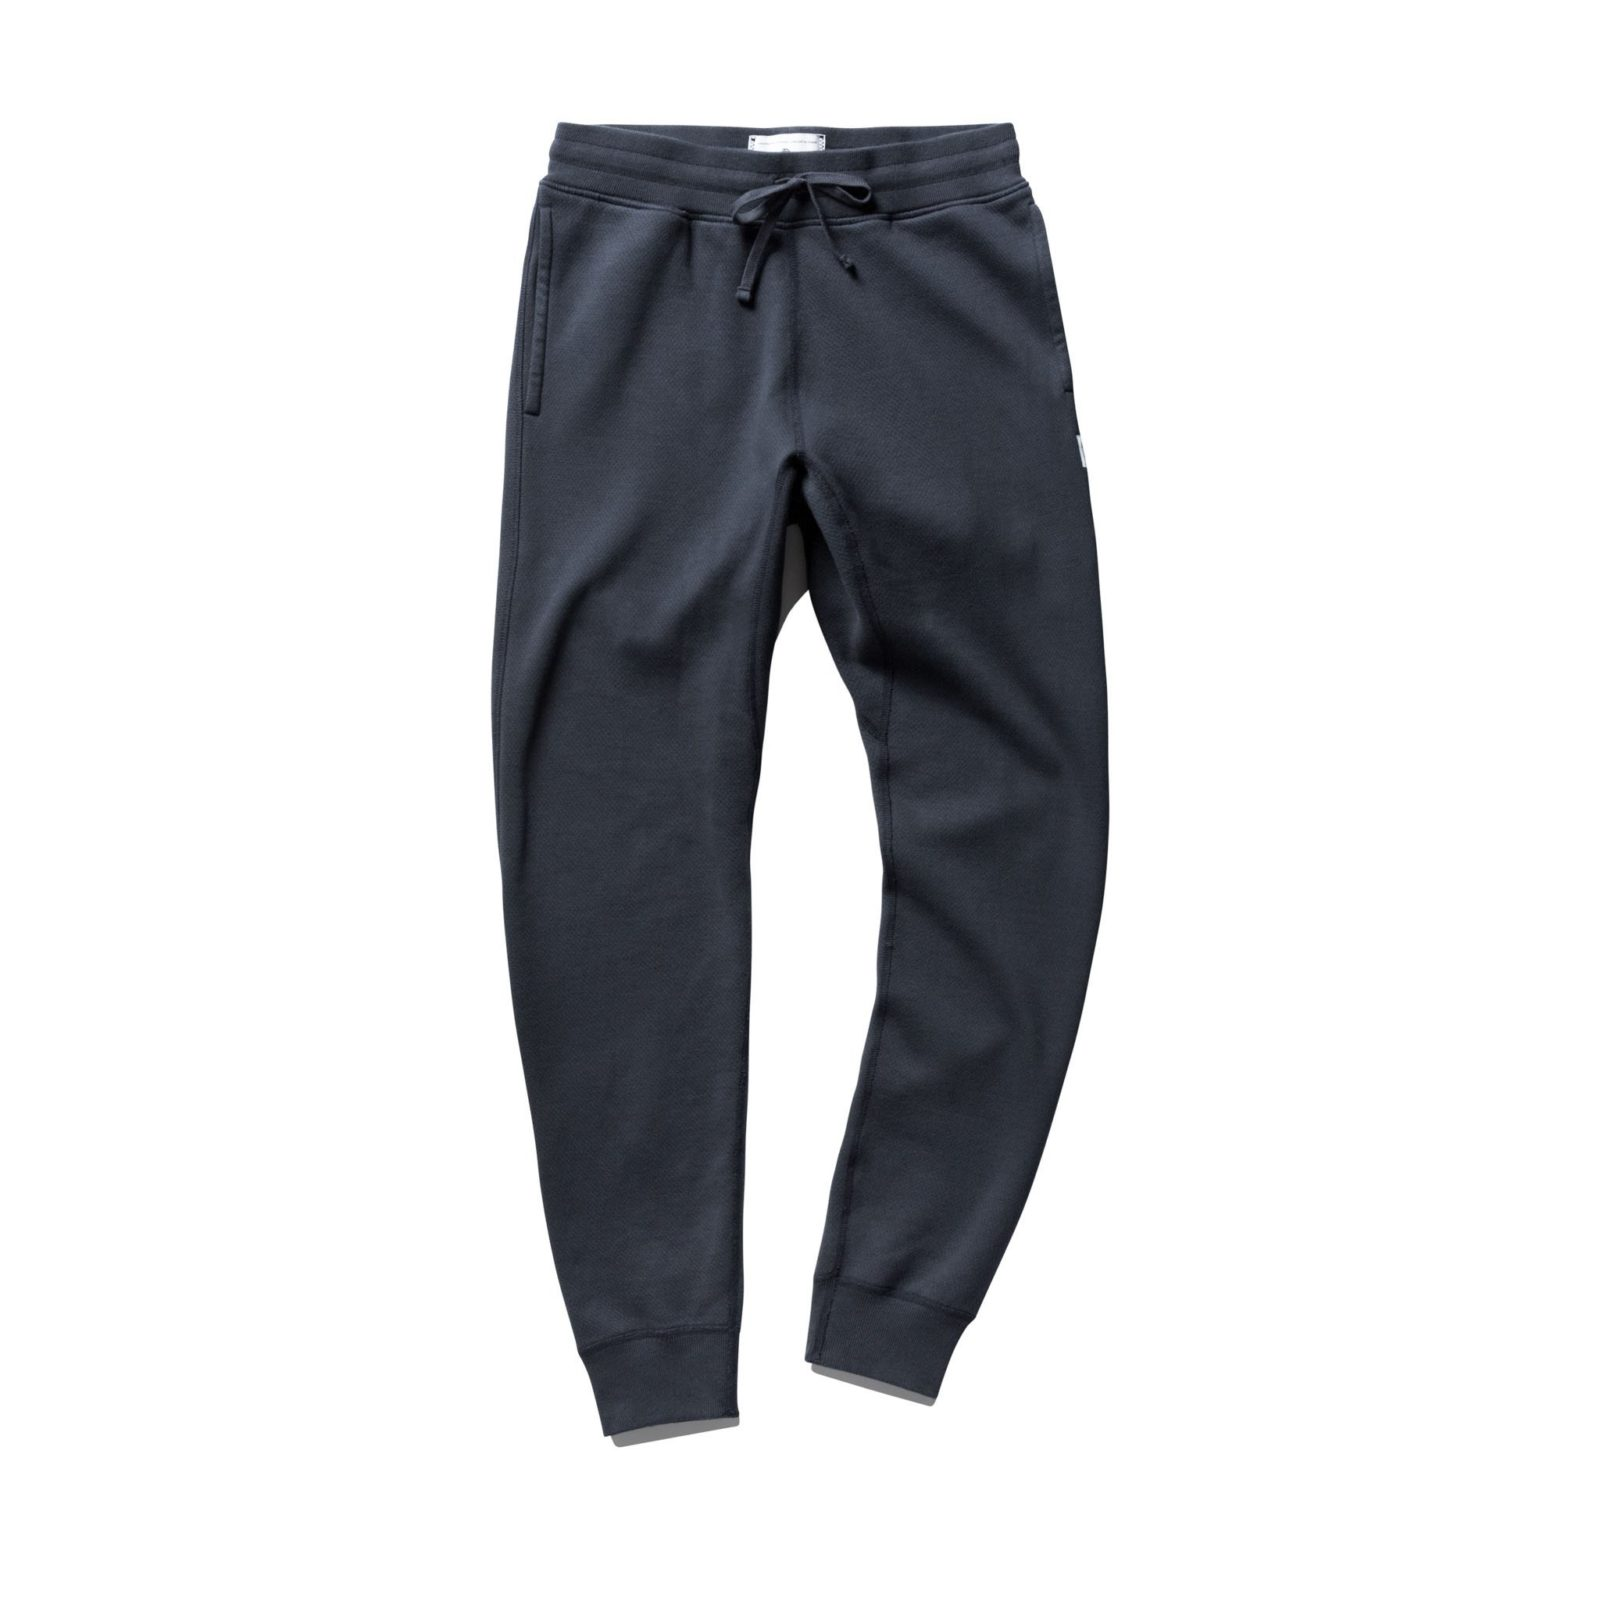 REIGNING CHAMP MESH DOUBLE KNIT SWEATPANT